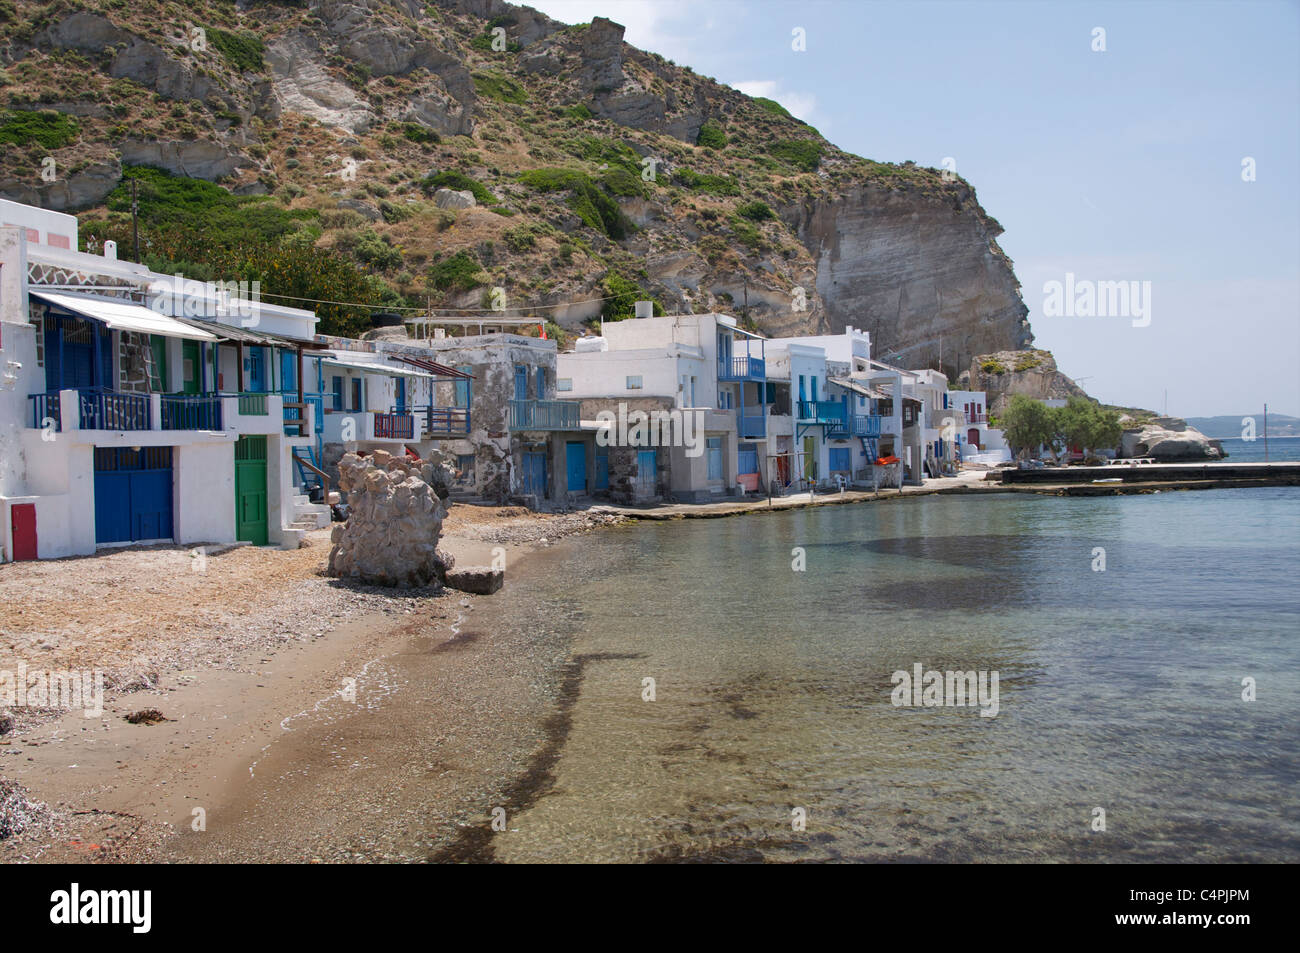 Brightly painted fishermen's houses in Klima,a traditional fishing village on the Cycladic Island Milos Greece - Stock Image